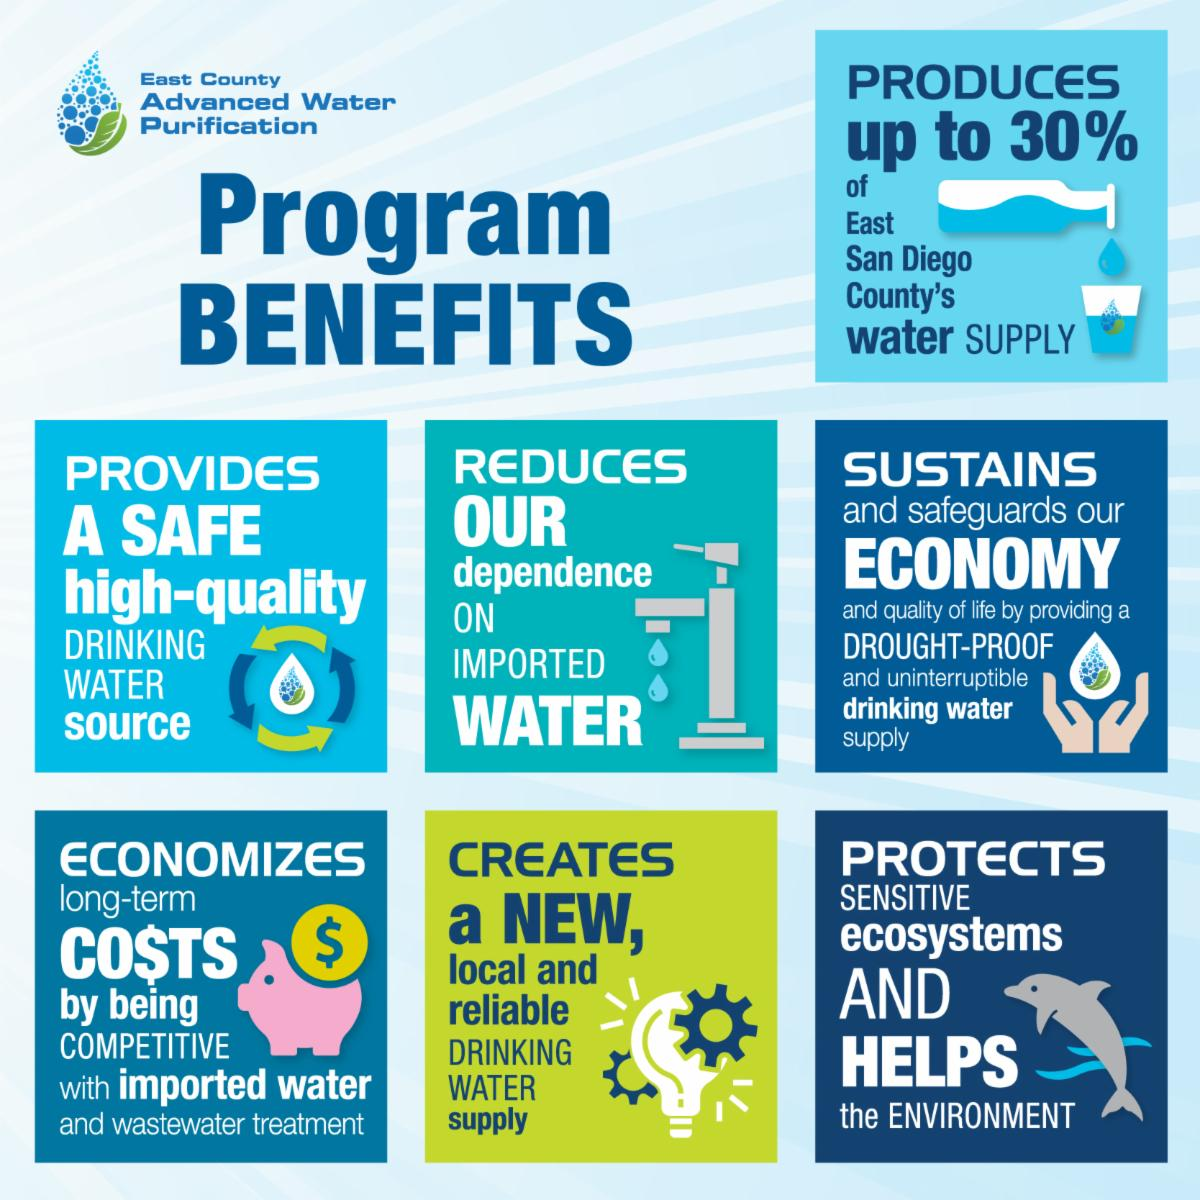 The East County Advanced Water Purification Progam has many benefits.